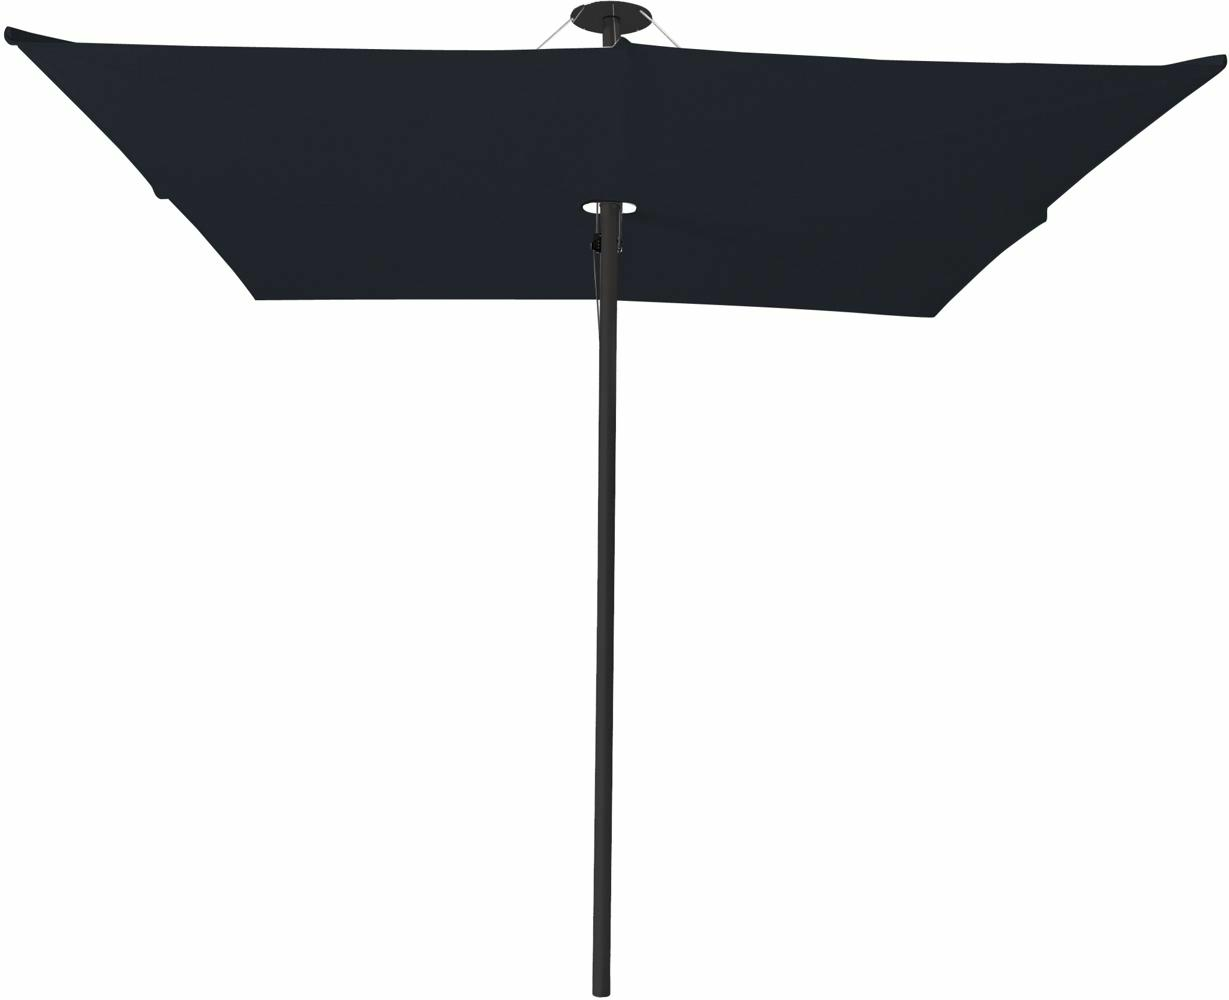 Infina center post umbrella, 3 m square, with frame in Dusk and Solidum Black canopy.